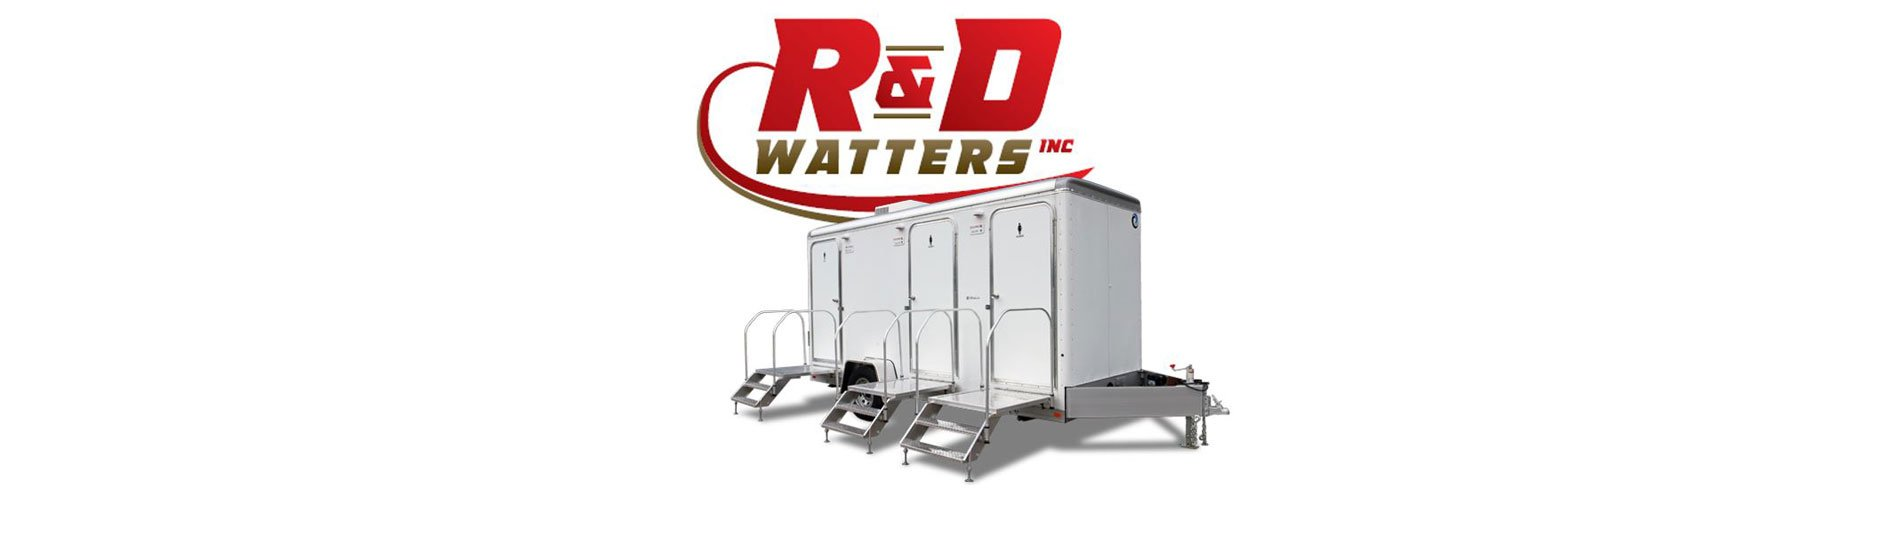 R d watters septic service inc septic services for Porta john rental